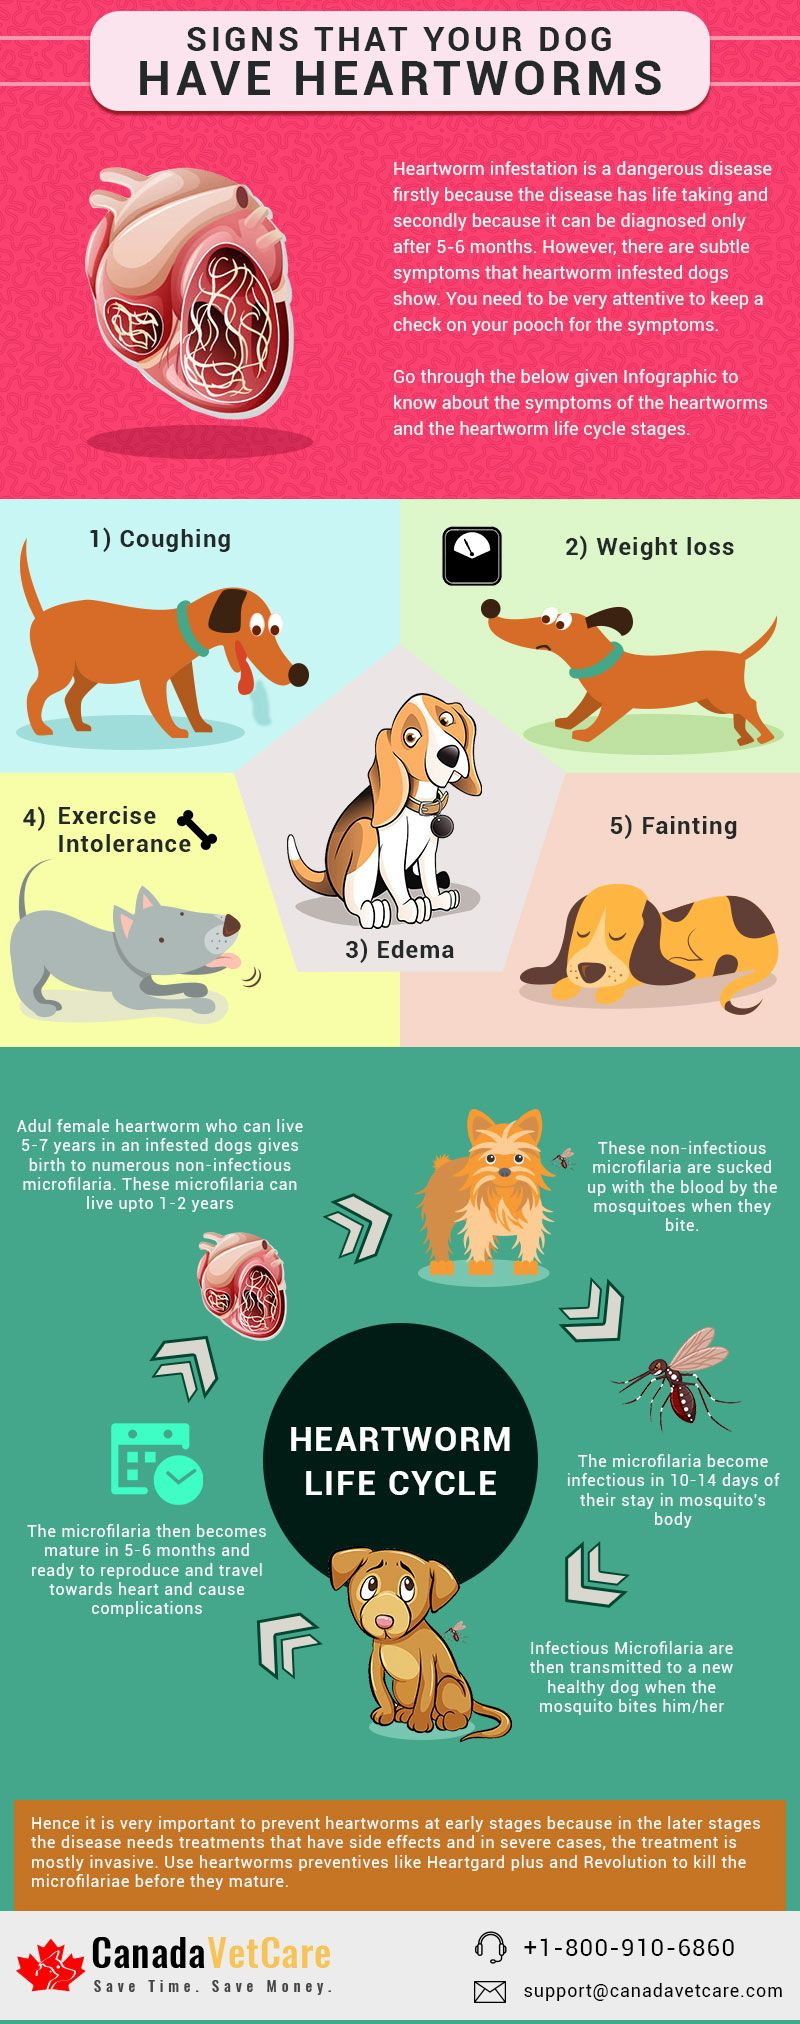 5 Signs That Indicate Your Dog Has Heartworms Infographic In 2020 Heartworm Your Dog Dog Infographic